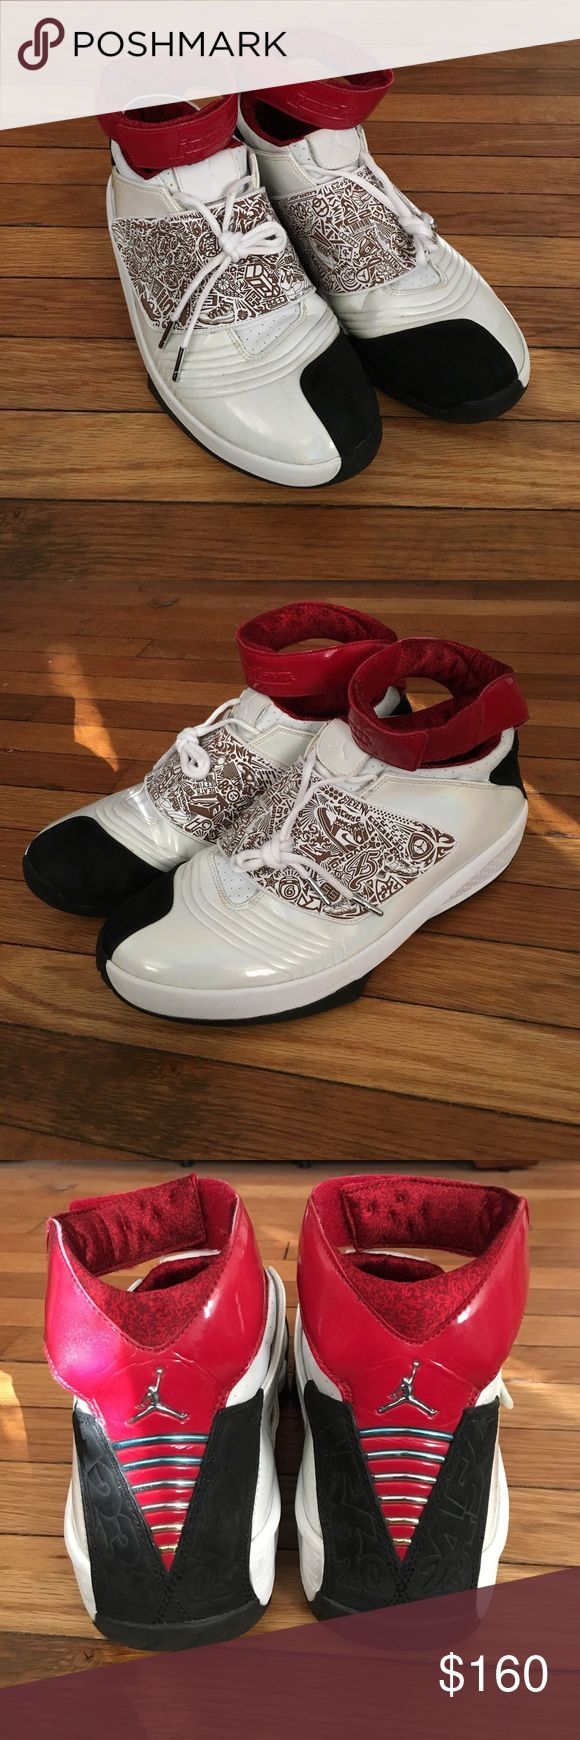 MEN'S AIR JORDAN XX Size: 12, air jordan 20s that have been worn a few times over the years and are in 9/10 condition, come with replacement box. Two marks on the inside of the right shoe but other than that, great condition for its age! Serious inquiries but no lowballing! Tags: air jordan 20, jordan xx, vintage, retro, nike, jordan, nmd, yeezy, adidas, polo, ralph lauren, polo jeans, supreme. Jordan Shoes Sneakers